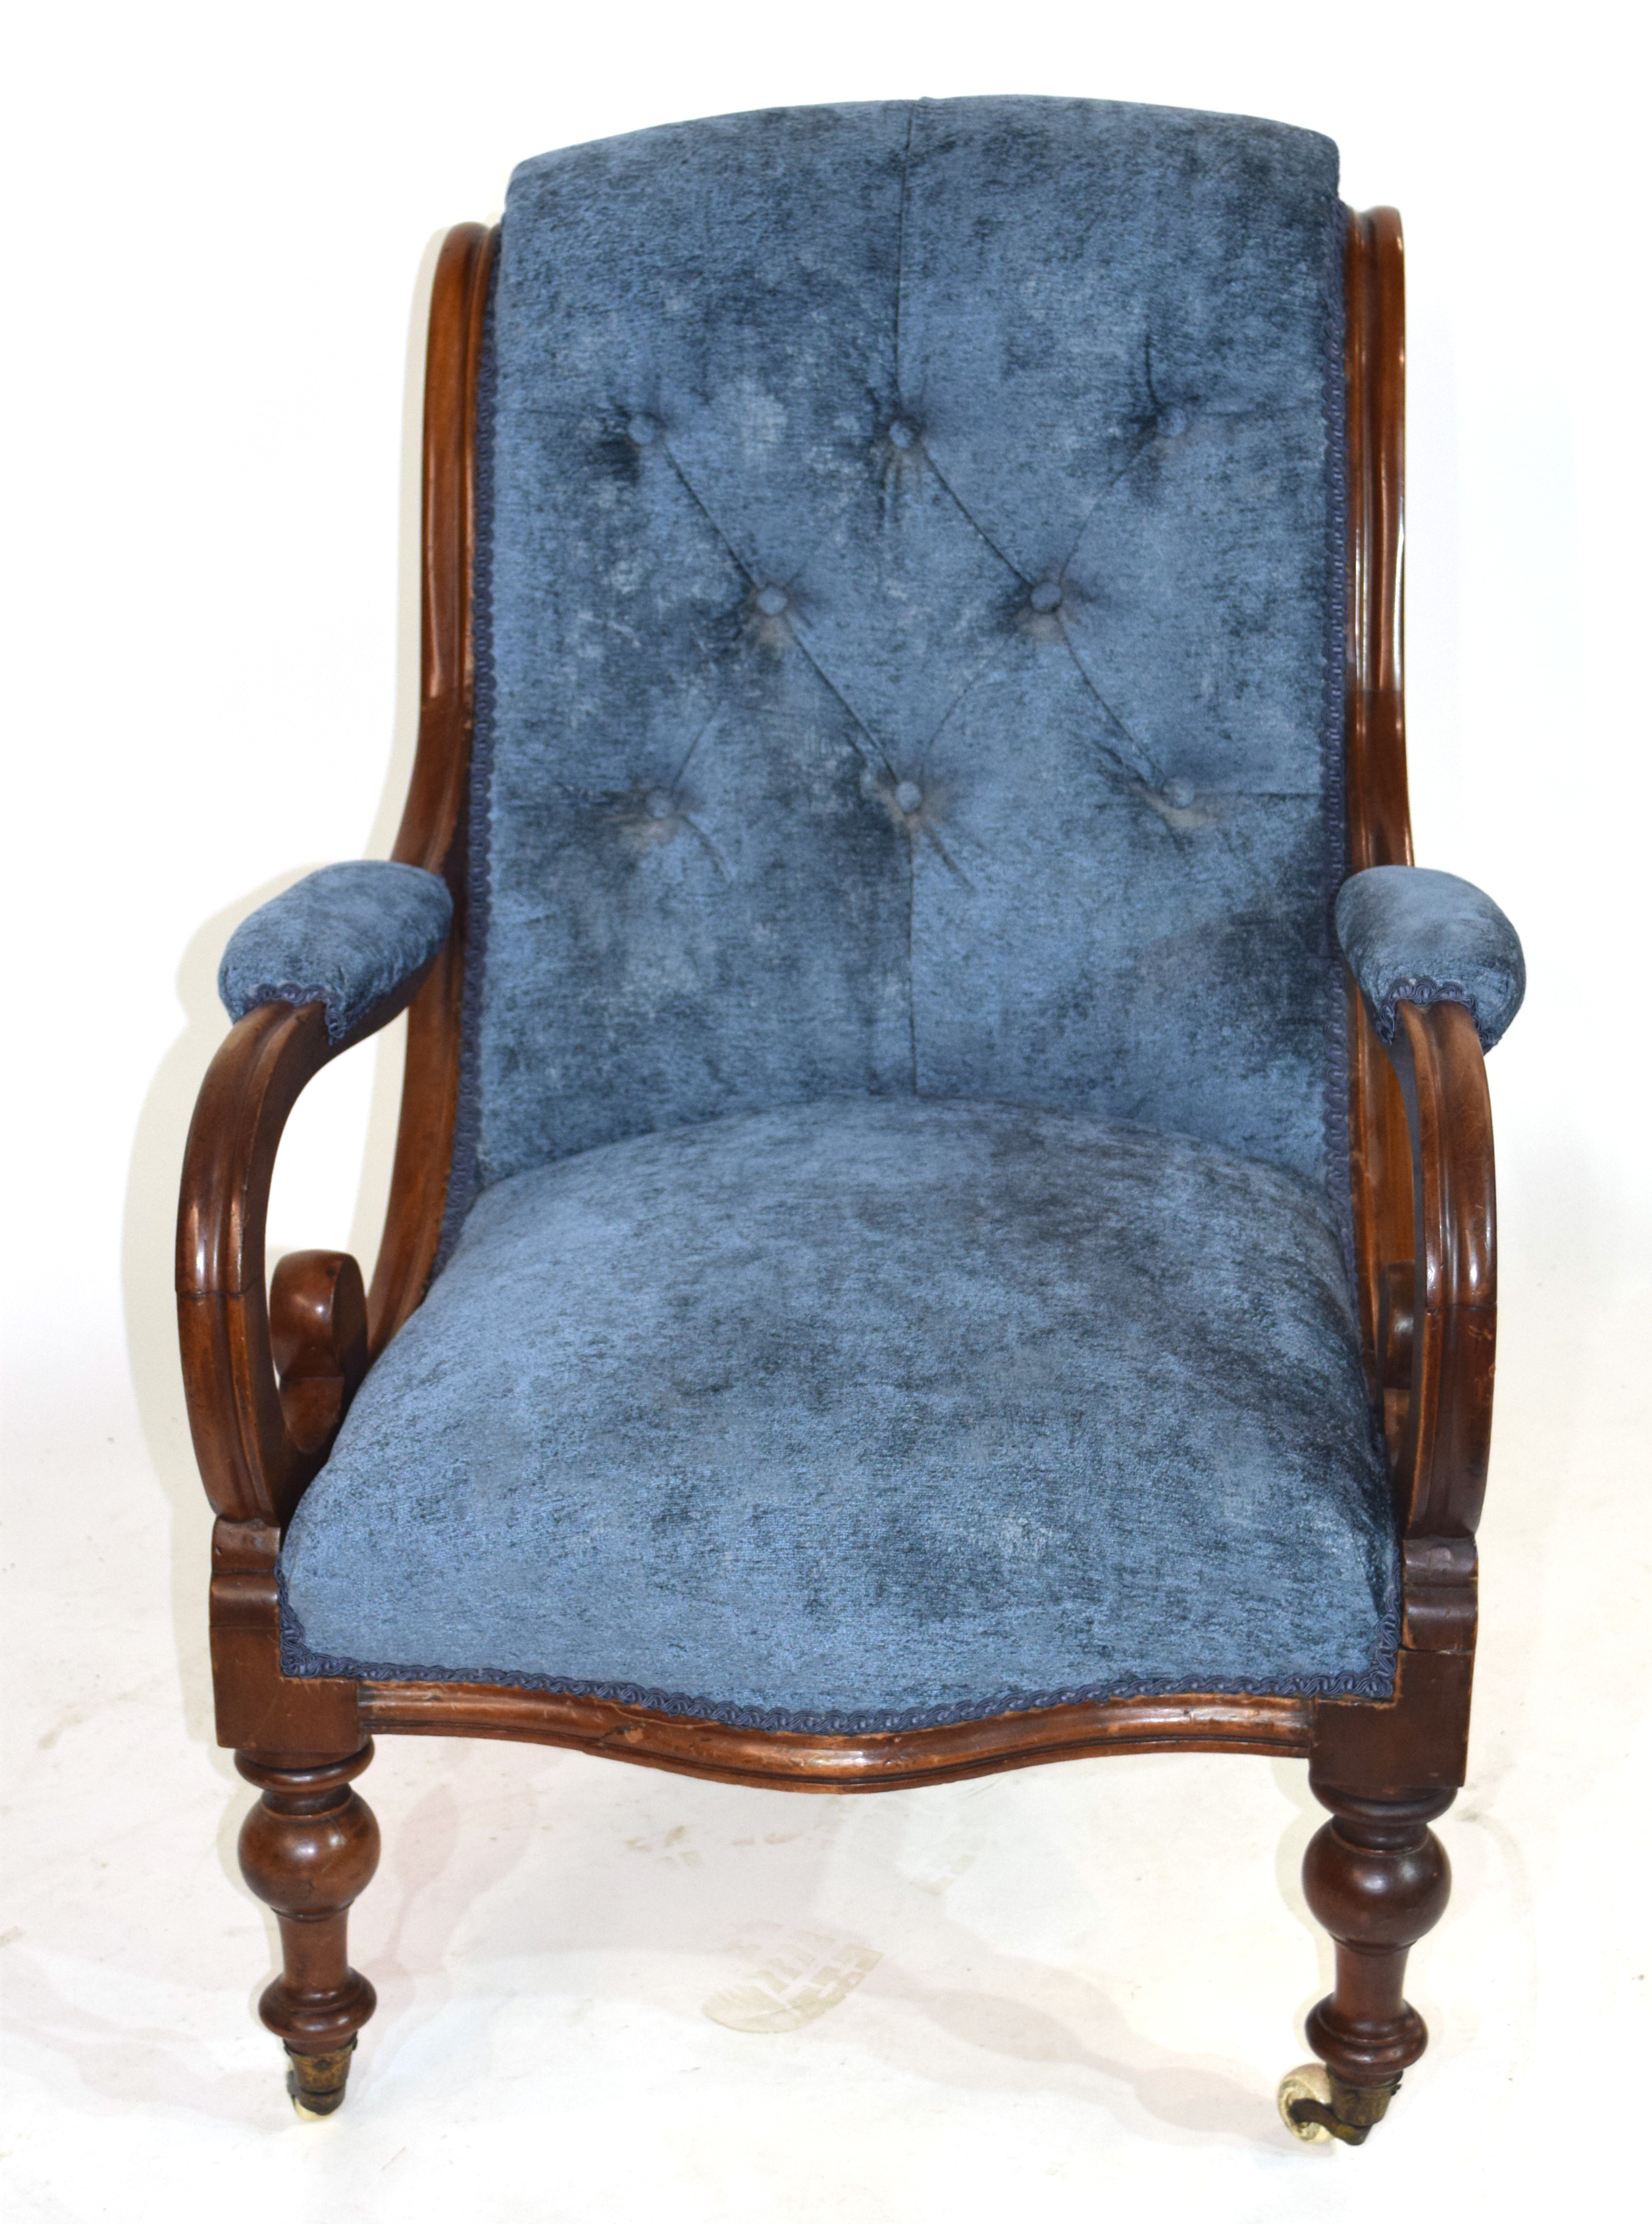 Victorian mahogany framed armchair with show wood frame, scrolled arms and turned front legs with - Image 2 of 3